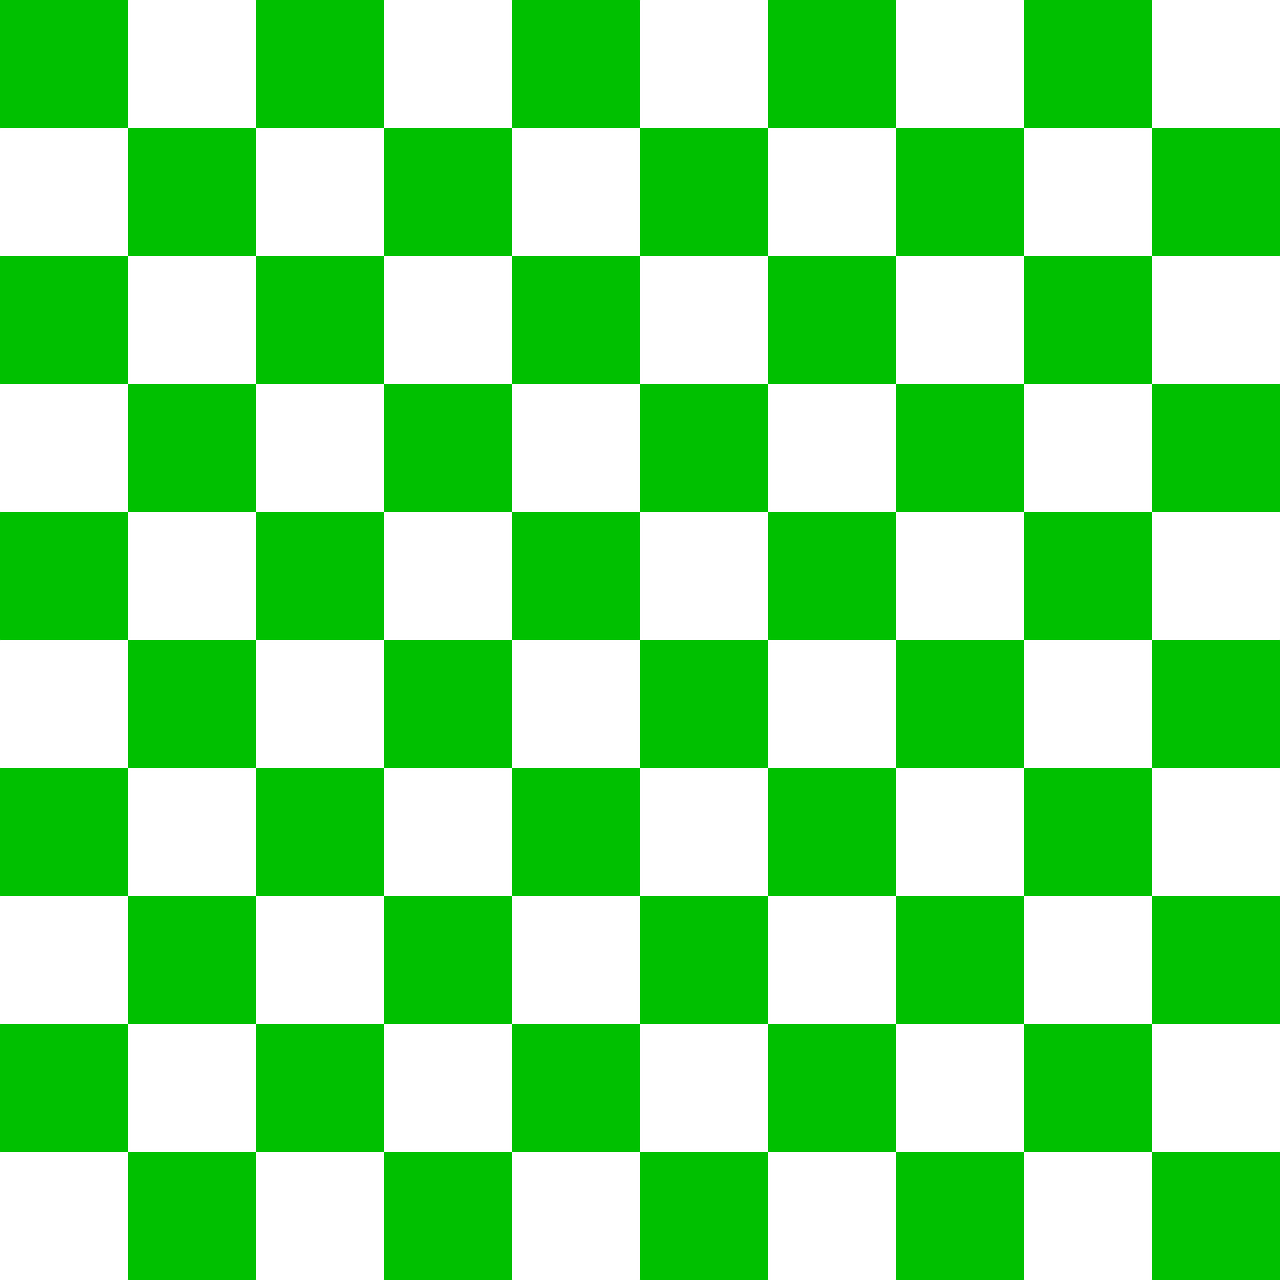 checkerboard green patterns free photo